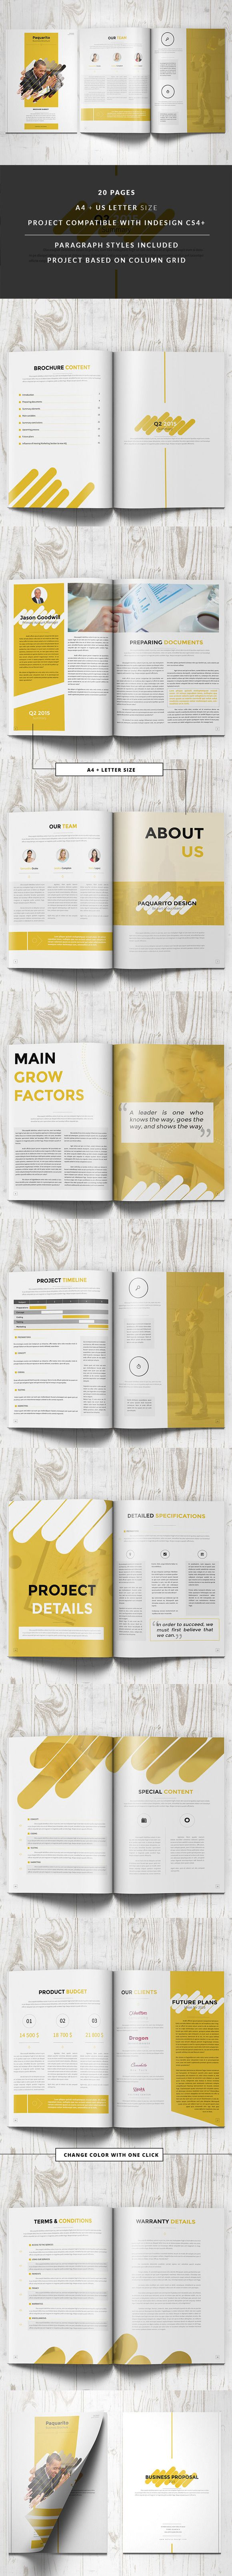 Paquarito Business Proposal by Kahuna Design on @creativemarket